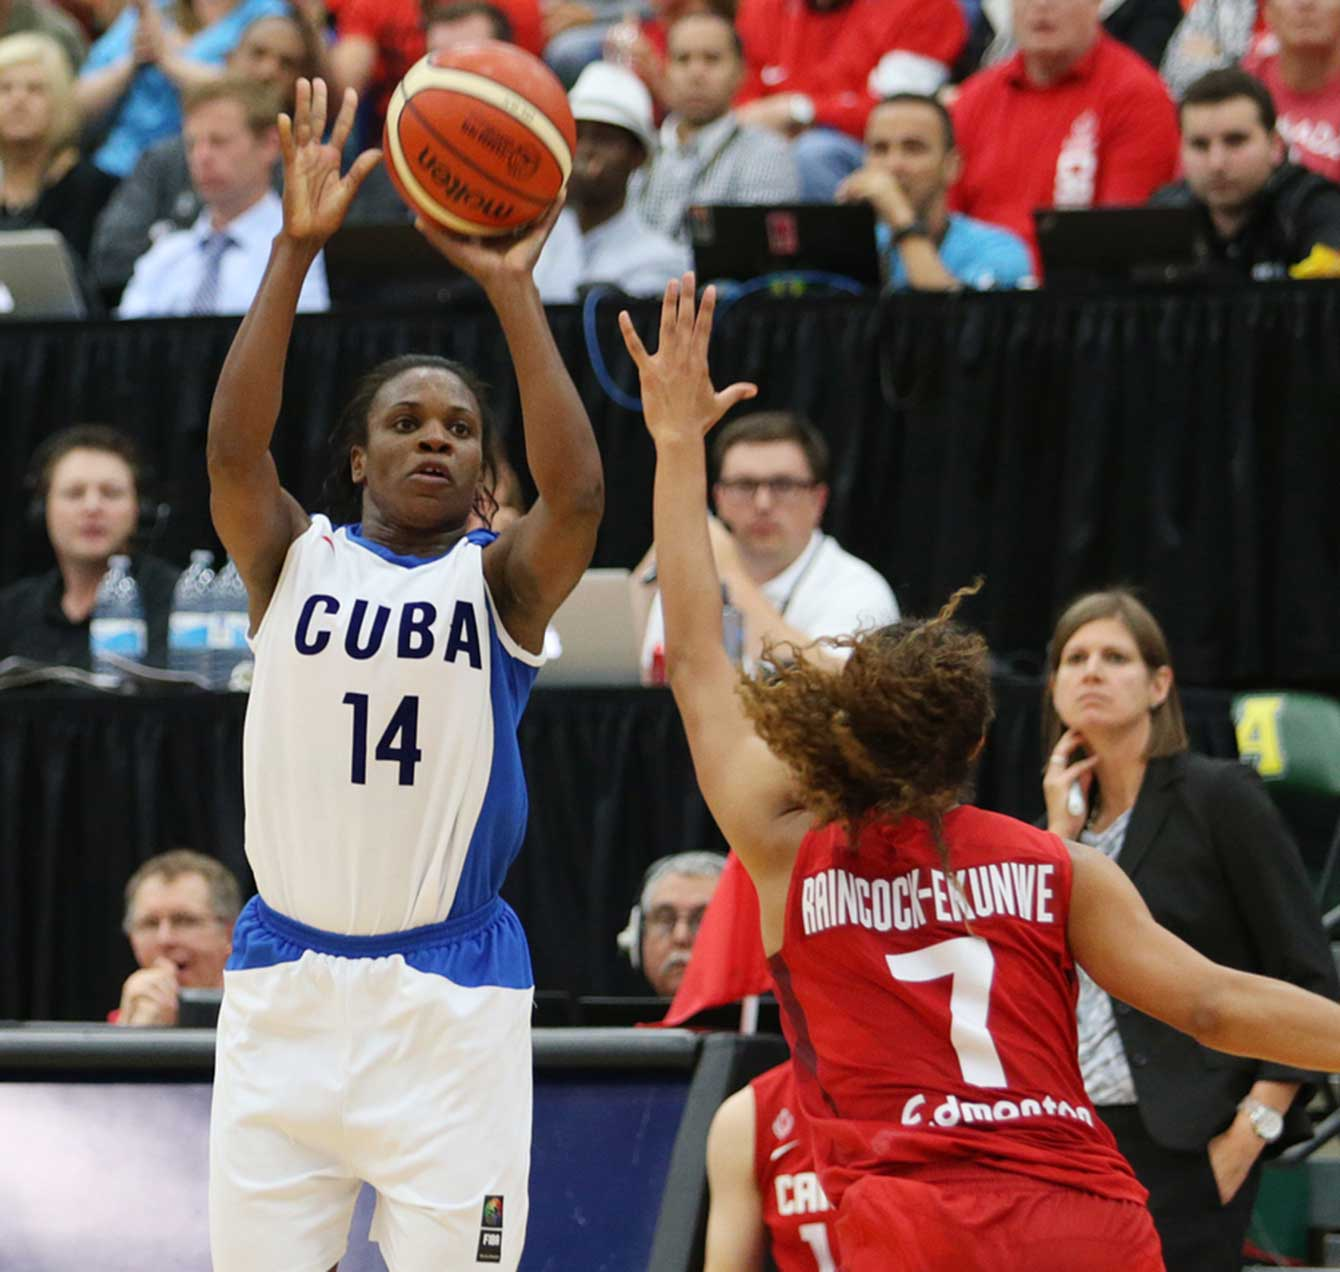 Leidys Oquendo was a big reason Cuba stuck around in the gold medal game.